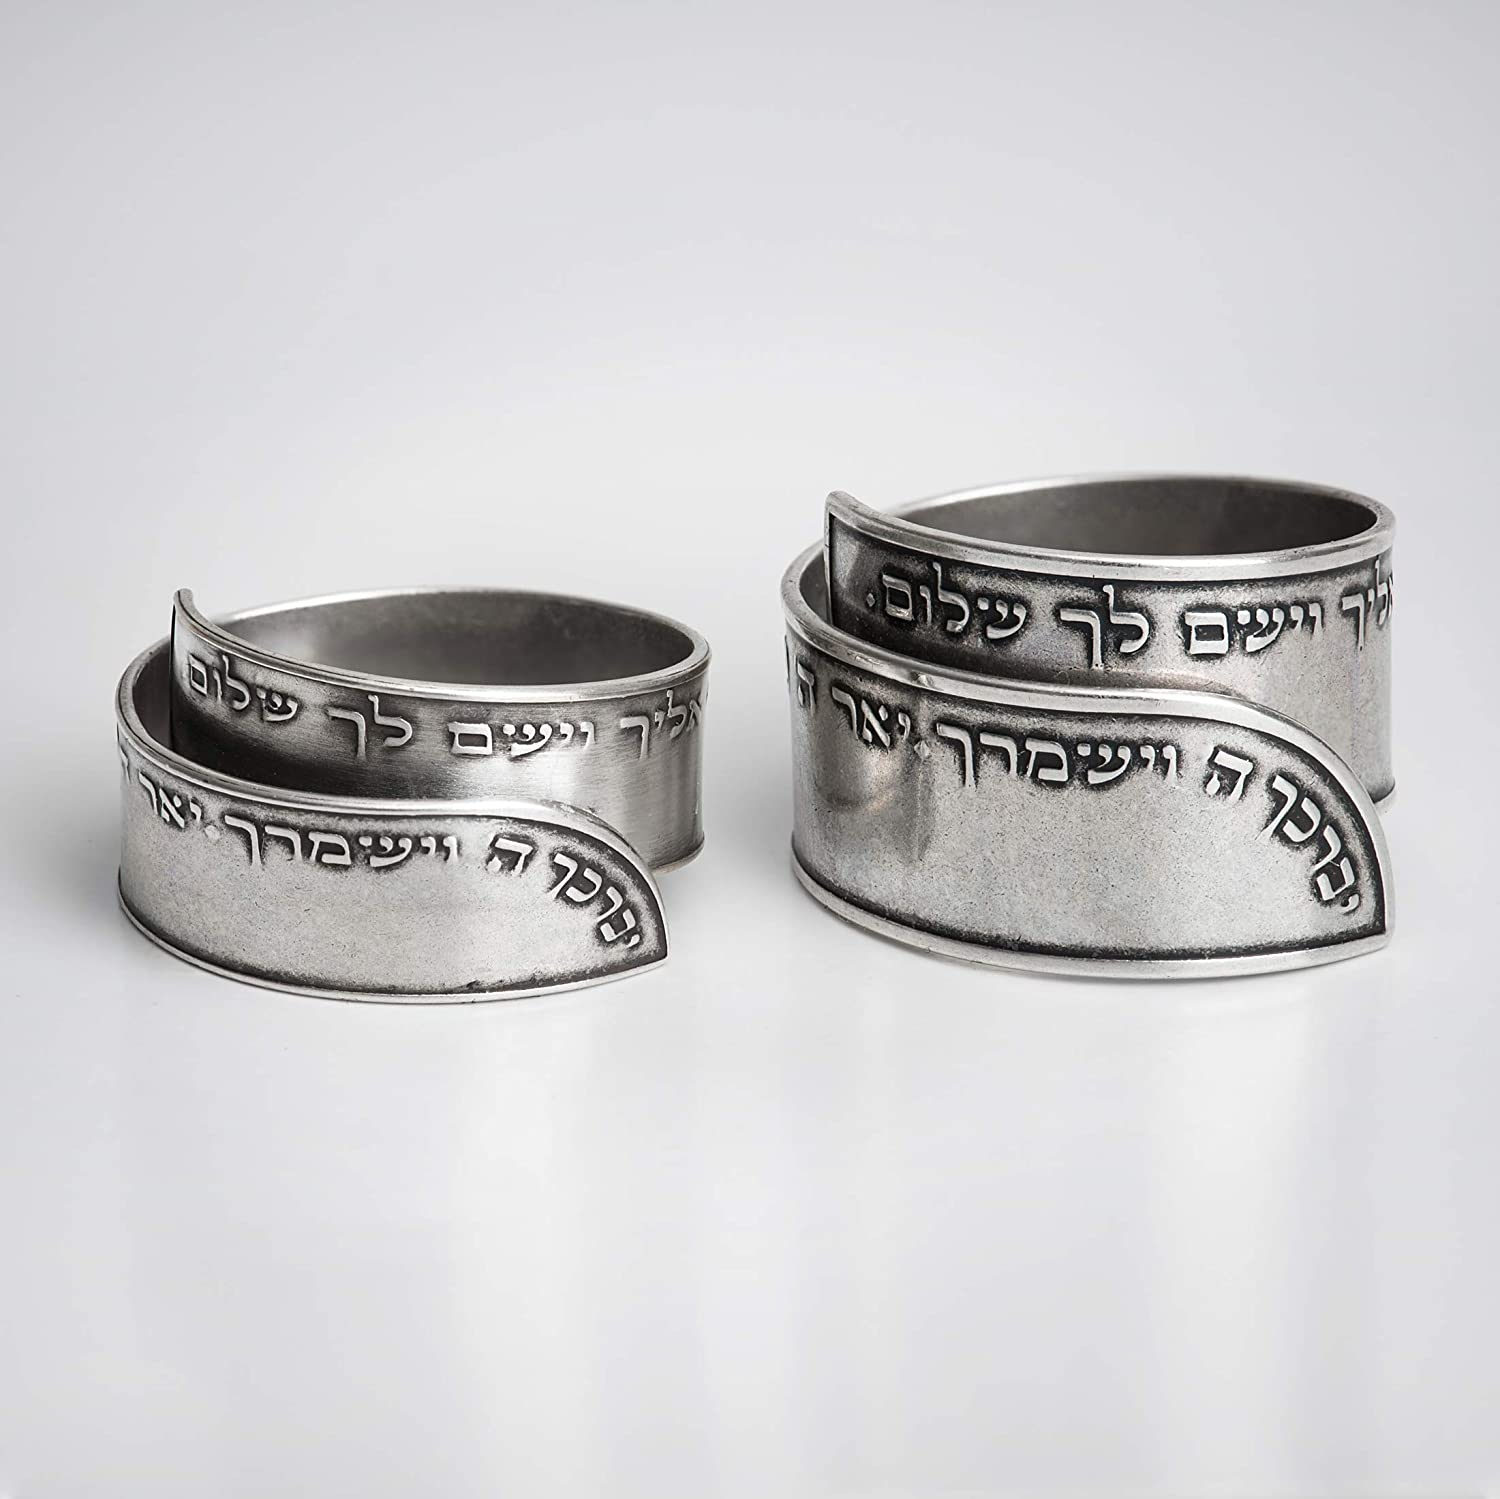 8f30882bcca96 Jewish ring engraved with the Priestly blessing prayer, Unisex 925 sterling  silver plated open adjustable ring, Handmade Israeli religious Hebrew ...